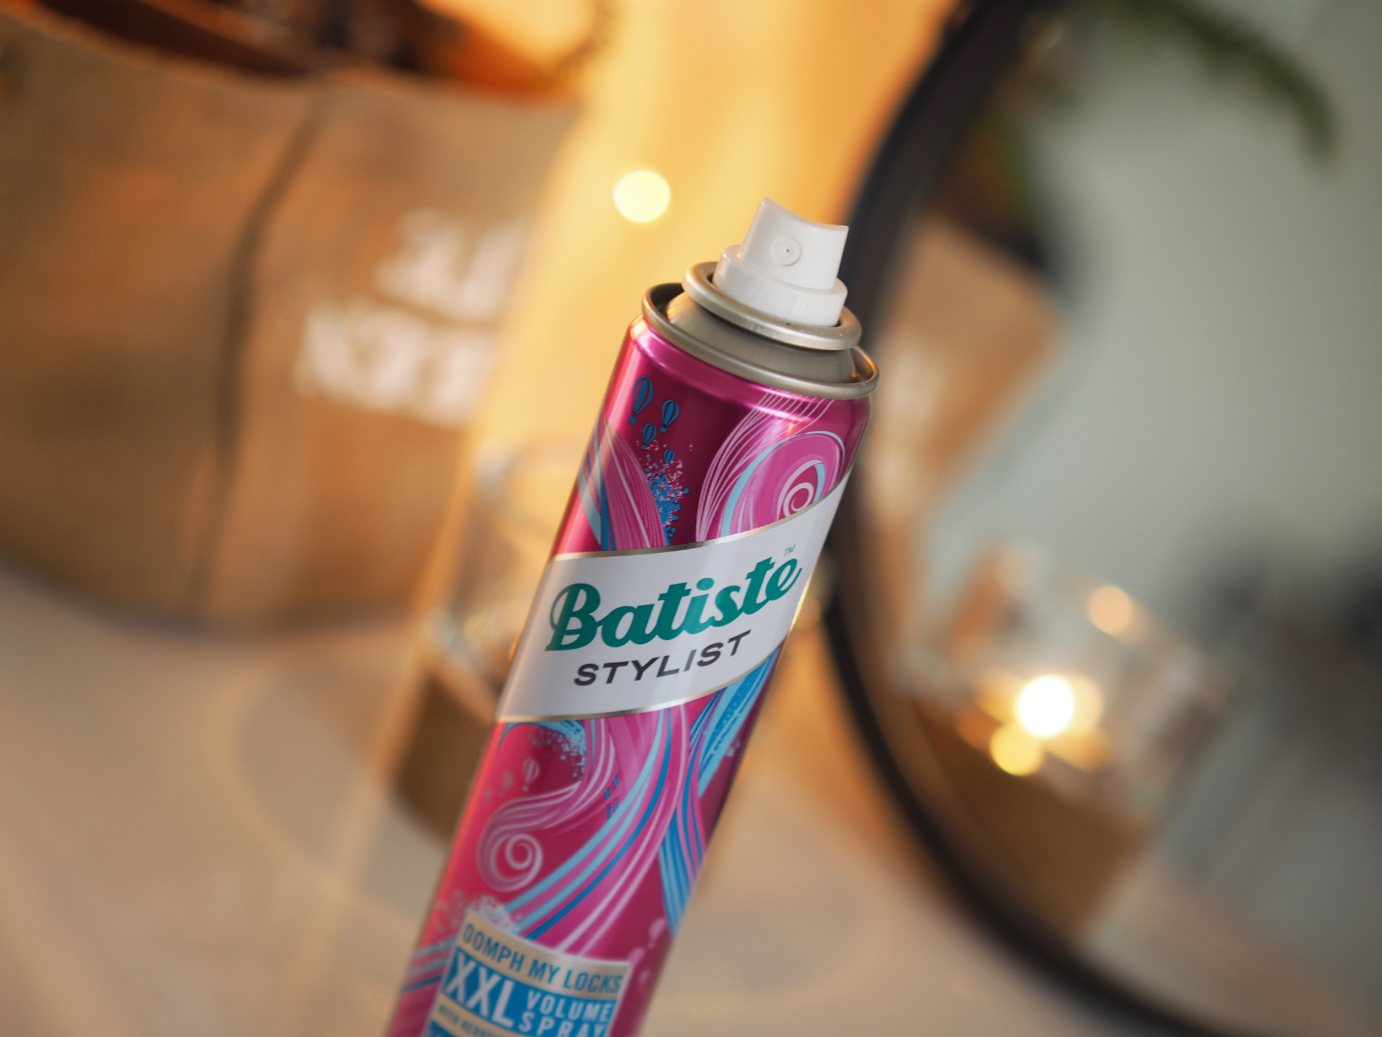 BATISTE XXL VOLUME SPRAY REVIEW 4